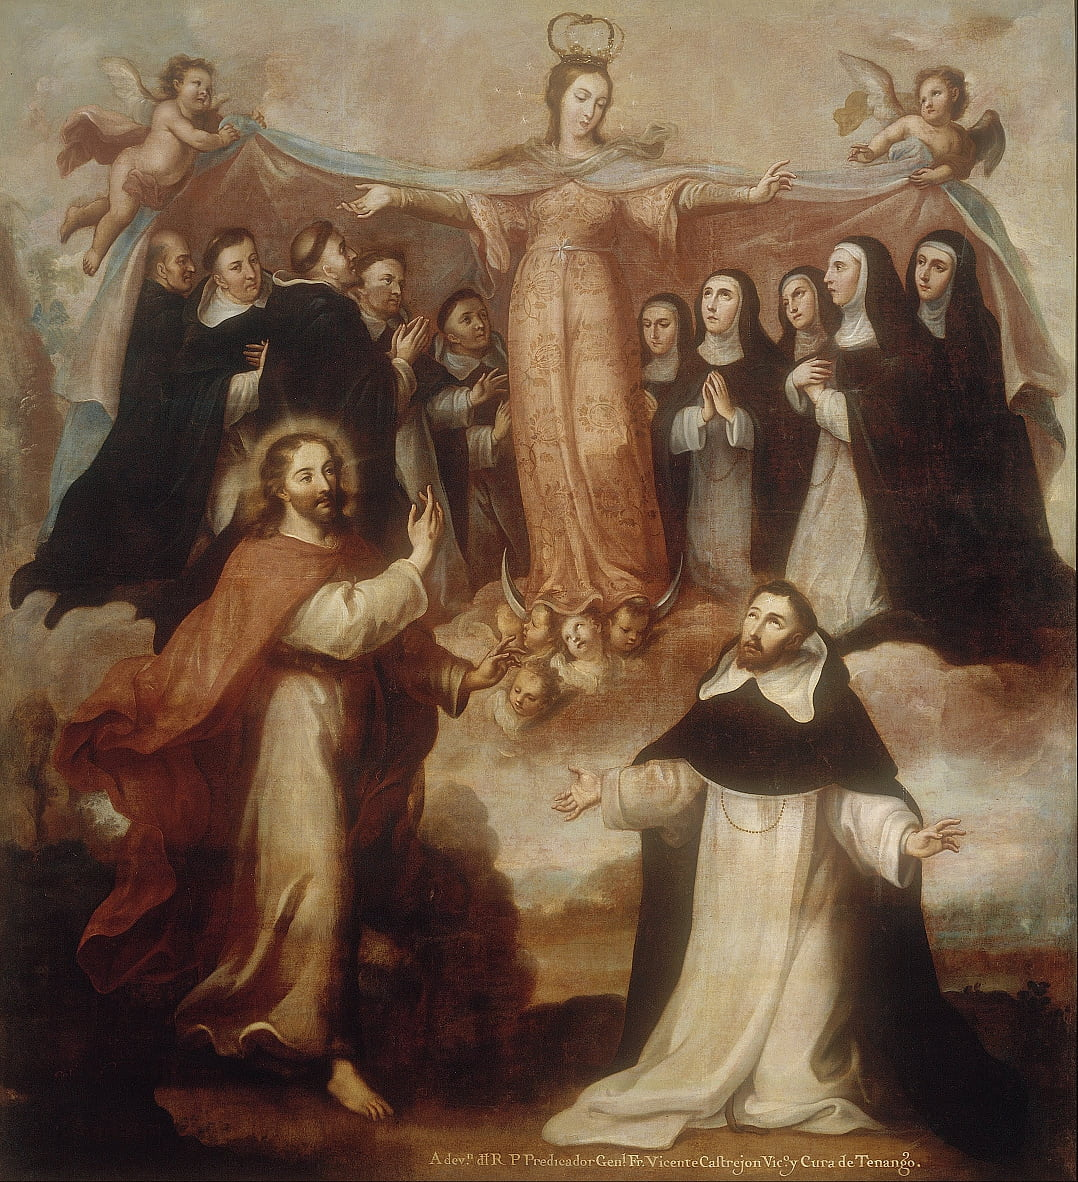 Allegory of the Virgin Patroness of the Dominicans by Miguel Cabrera